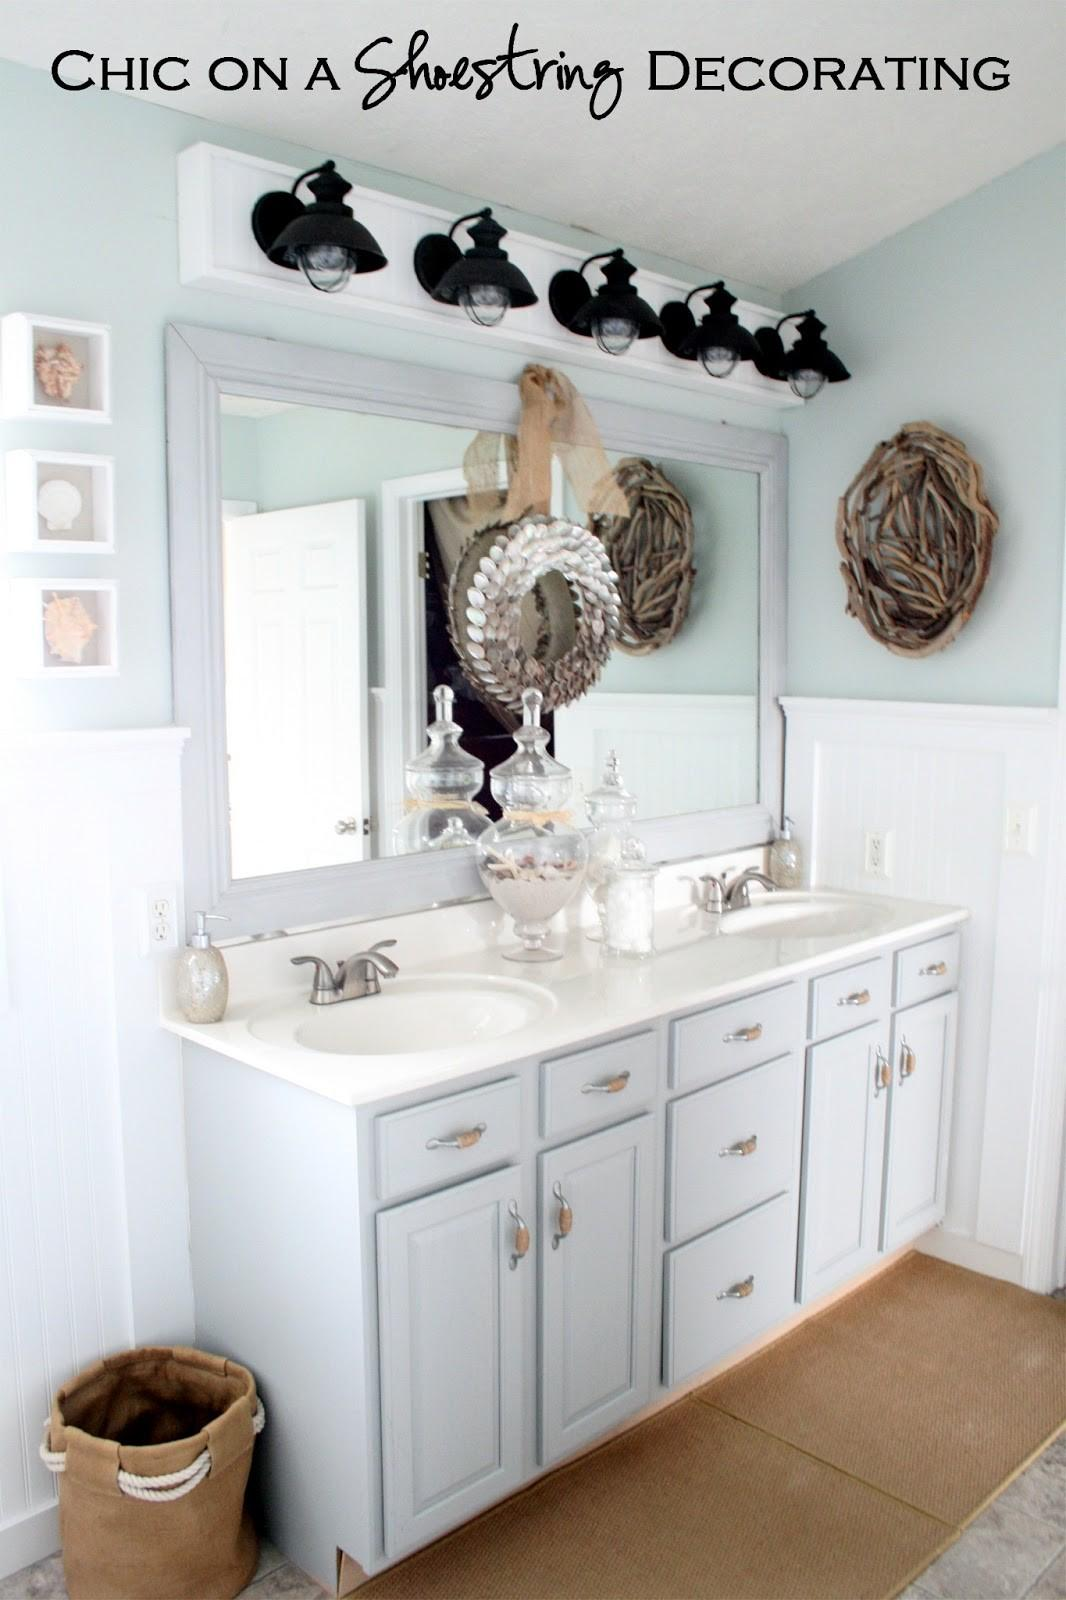 Chic Shoestring Decorating Build Bathroom